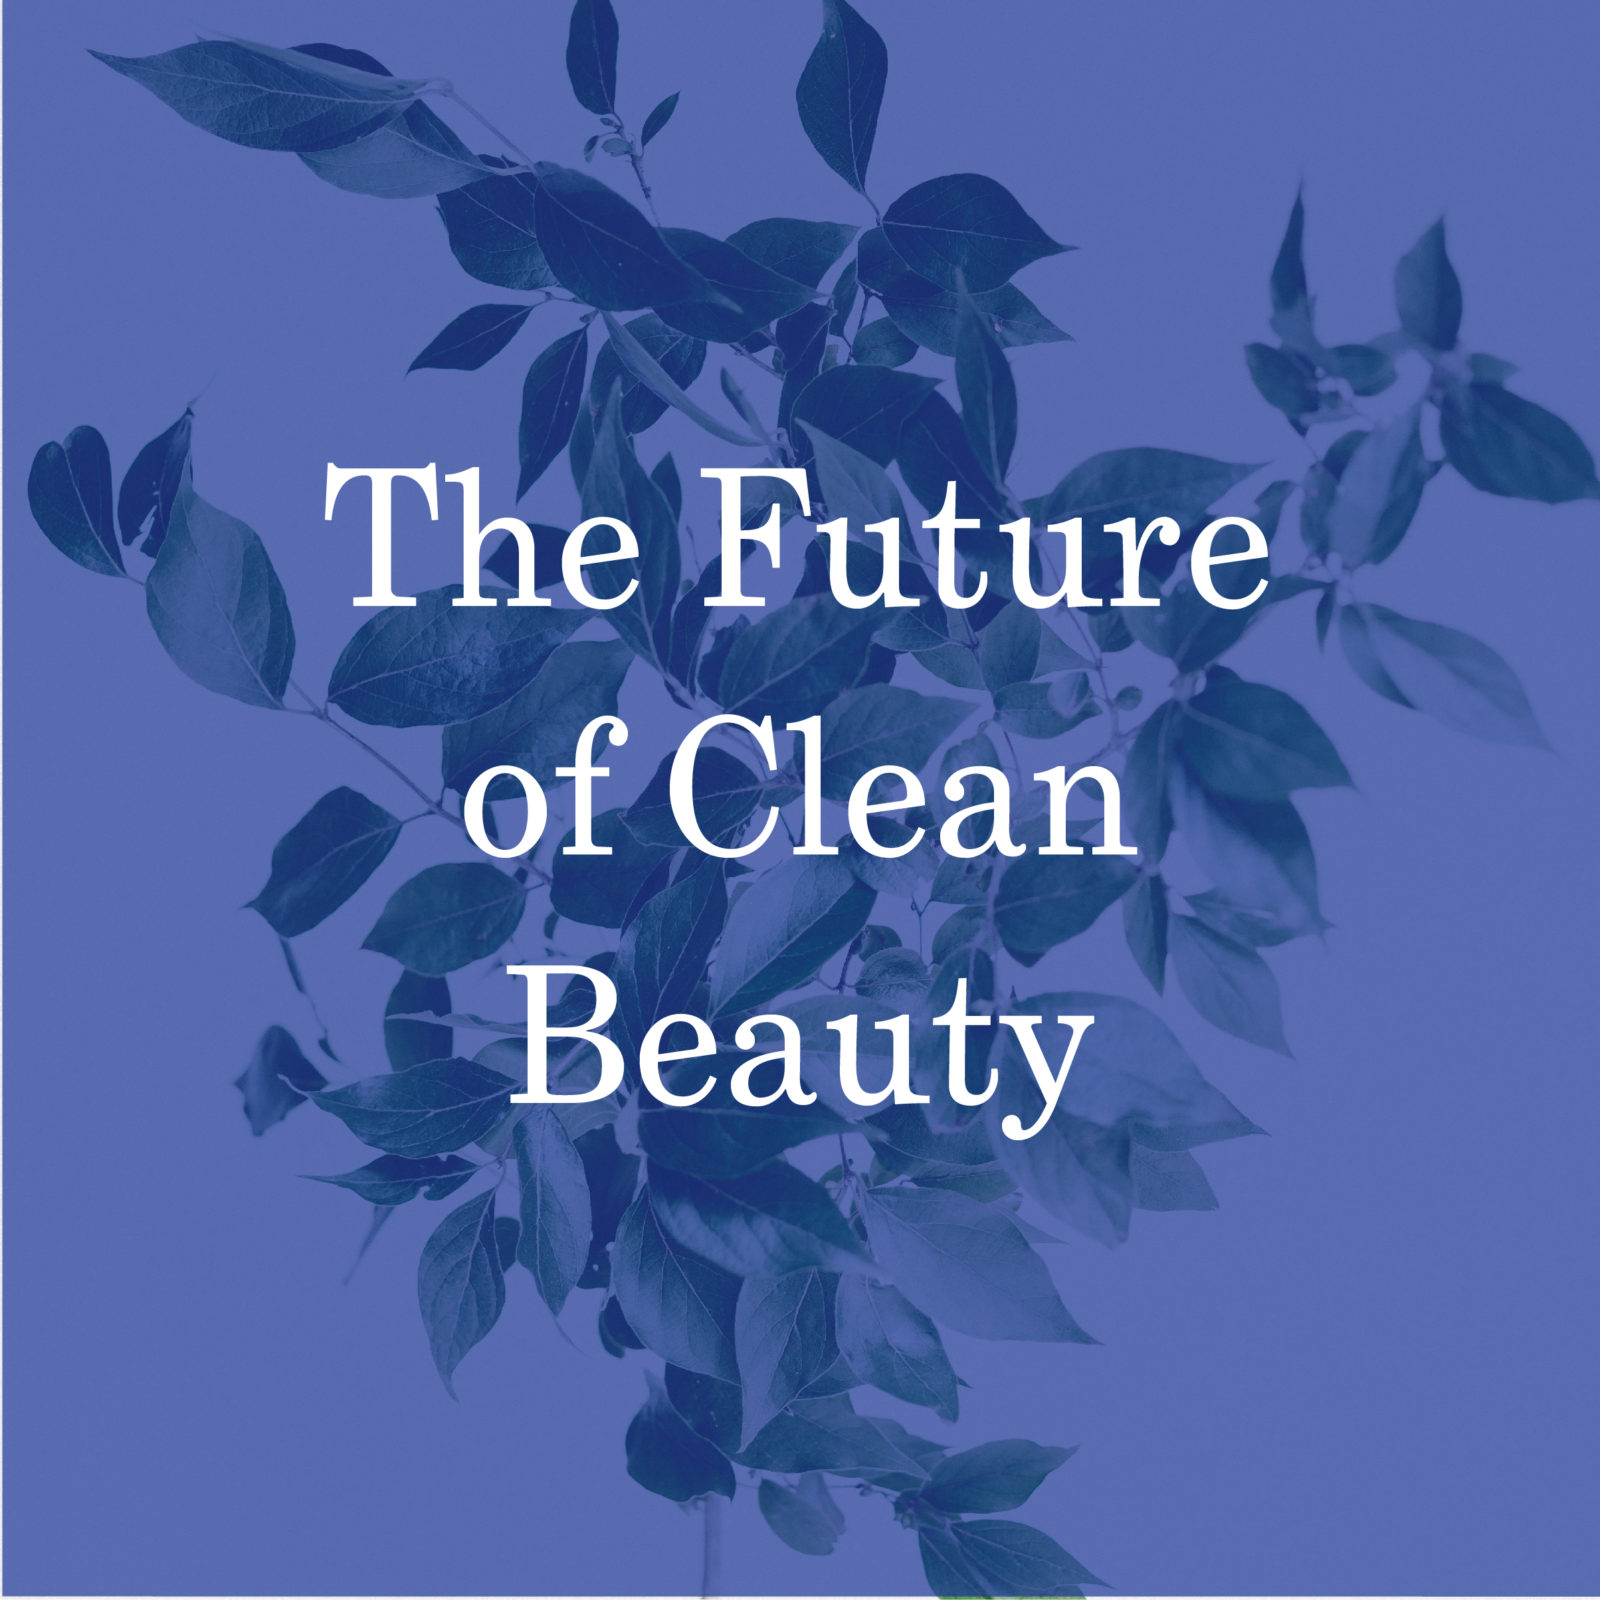 What is the future of Green Beauty?